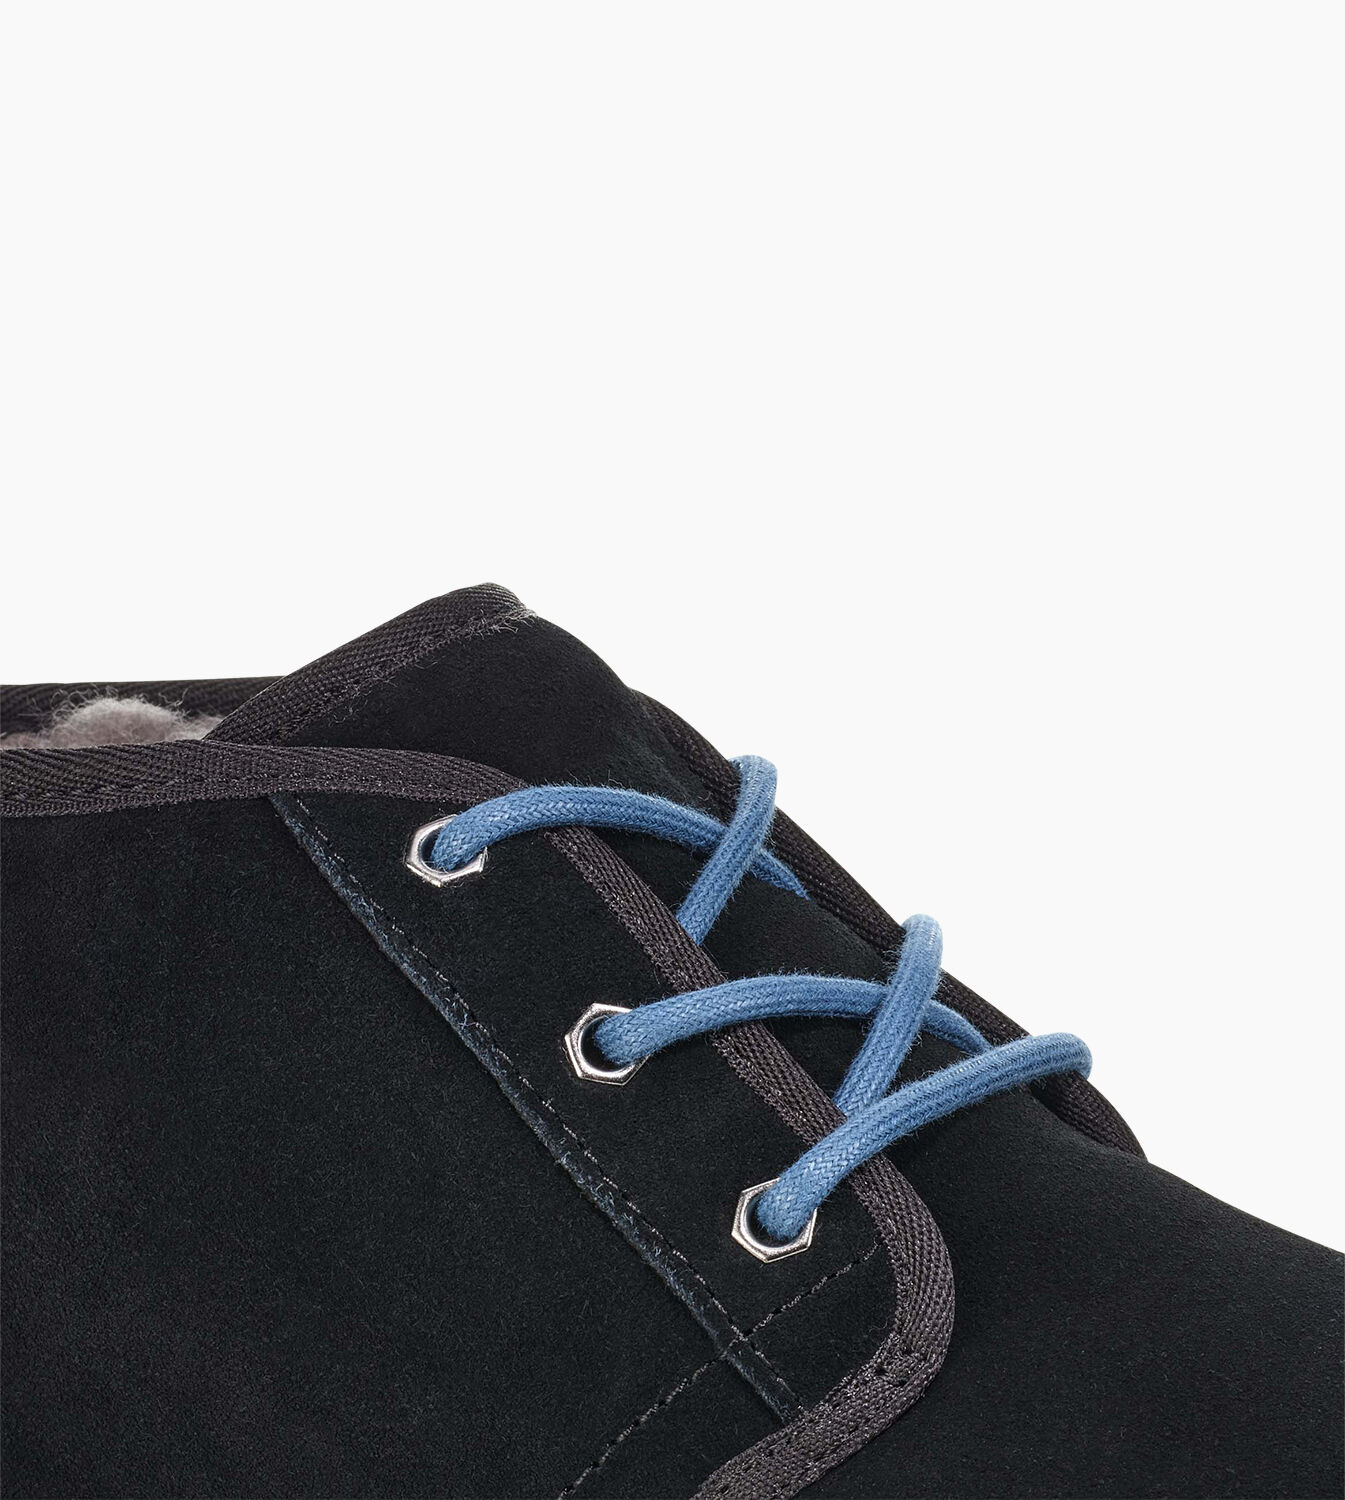 Replacement Laces - Ugg (US)